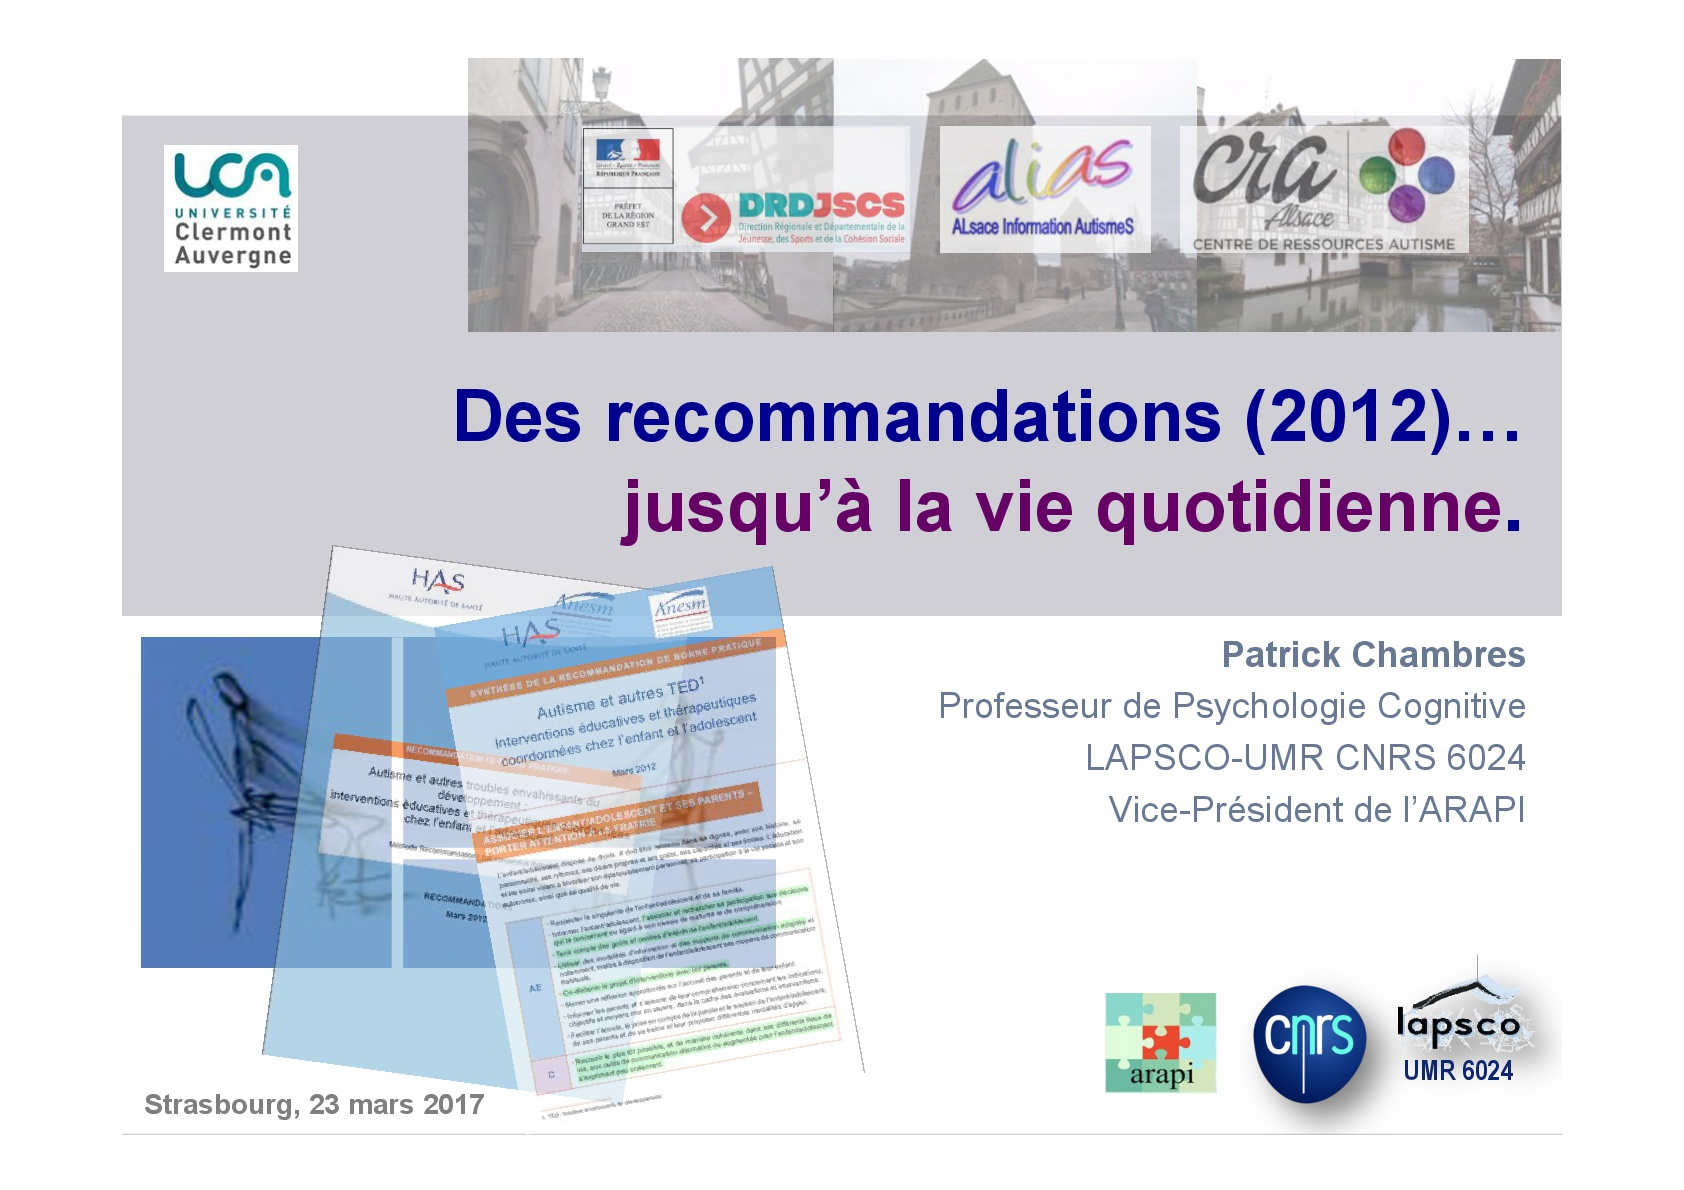 01_P-CHAMBRES_JourneeAutisme_230317-001